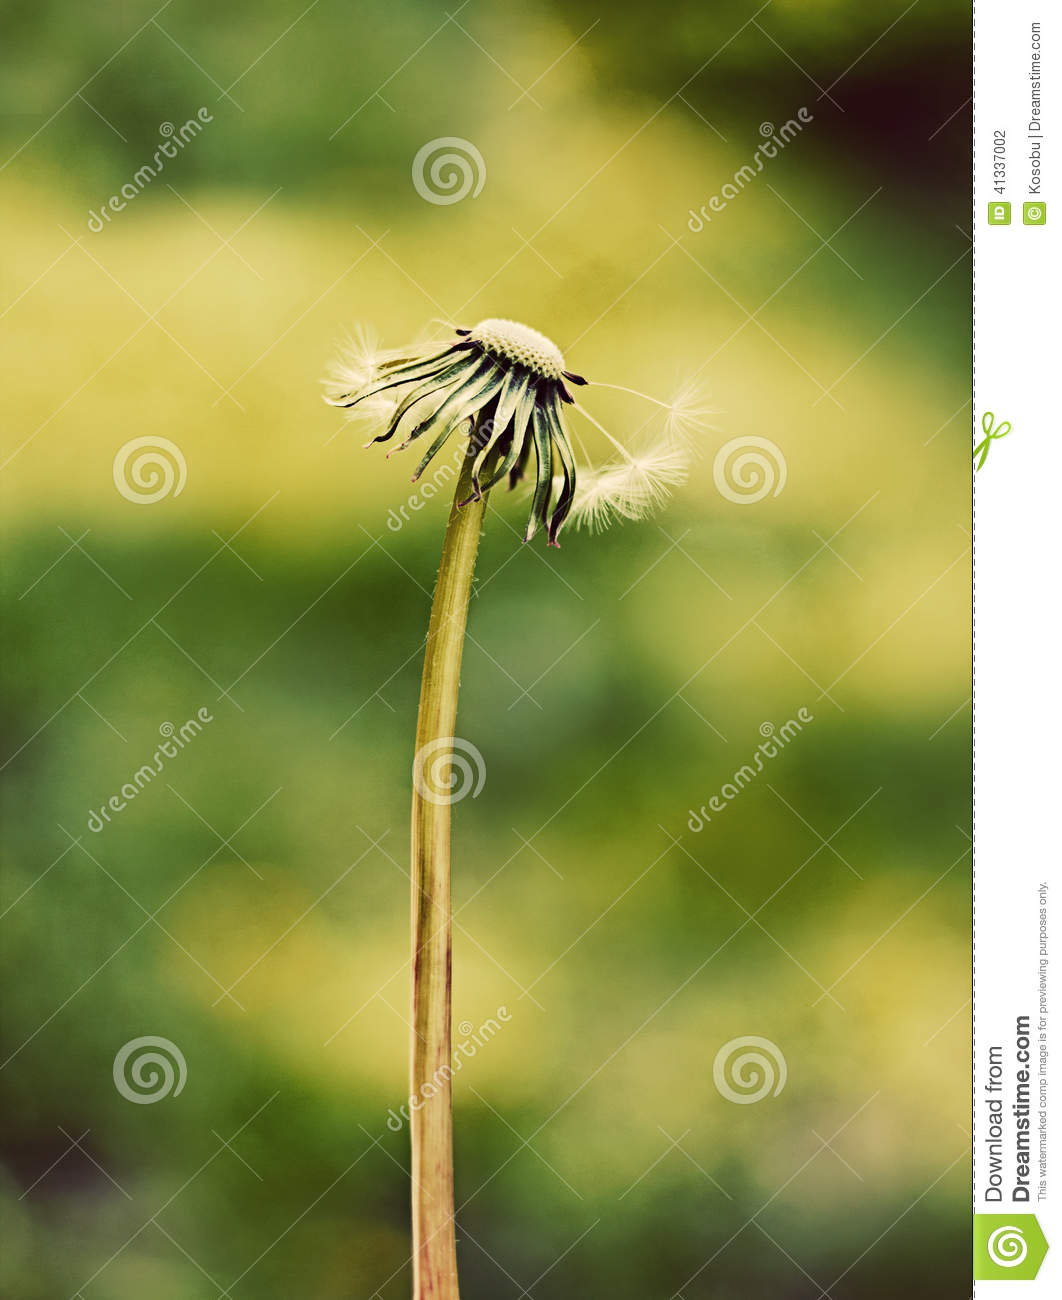 Lonely Old Dandelion Stock Photo. Image Of Luck, Change